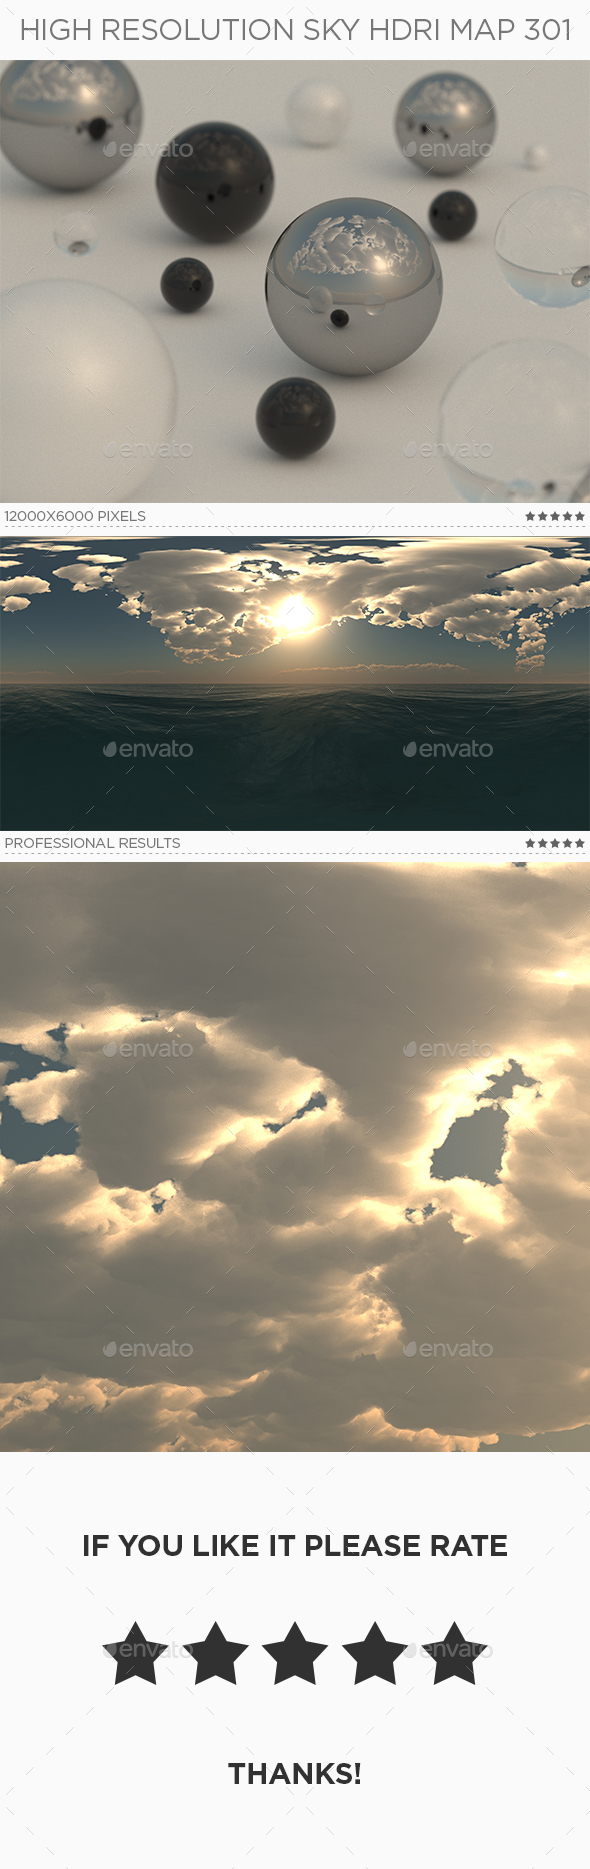 High Resolution Sky HDRi Map 301 - 3DOcean Item for Sale